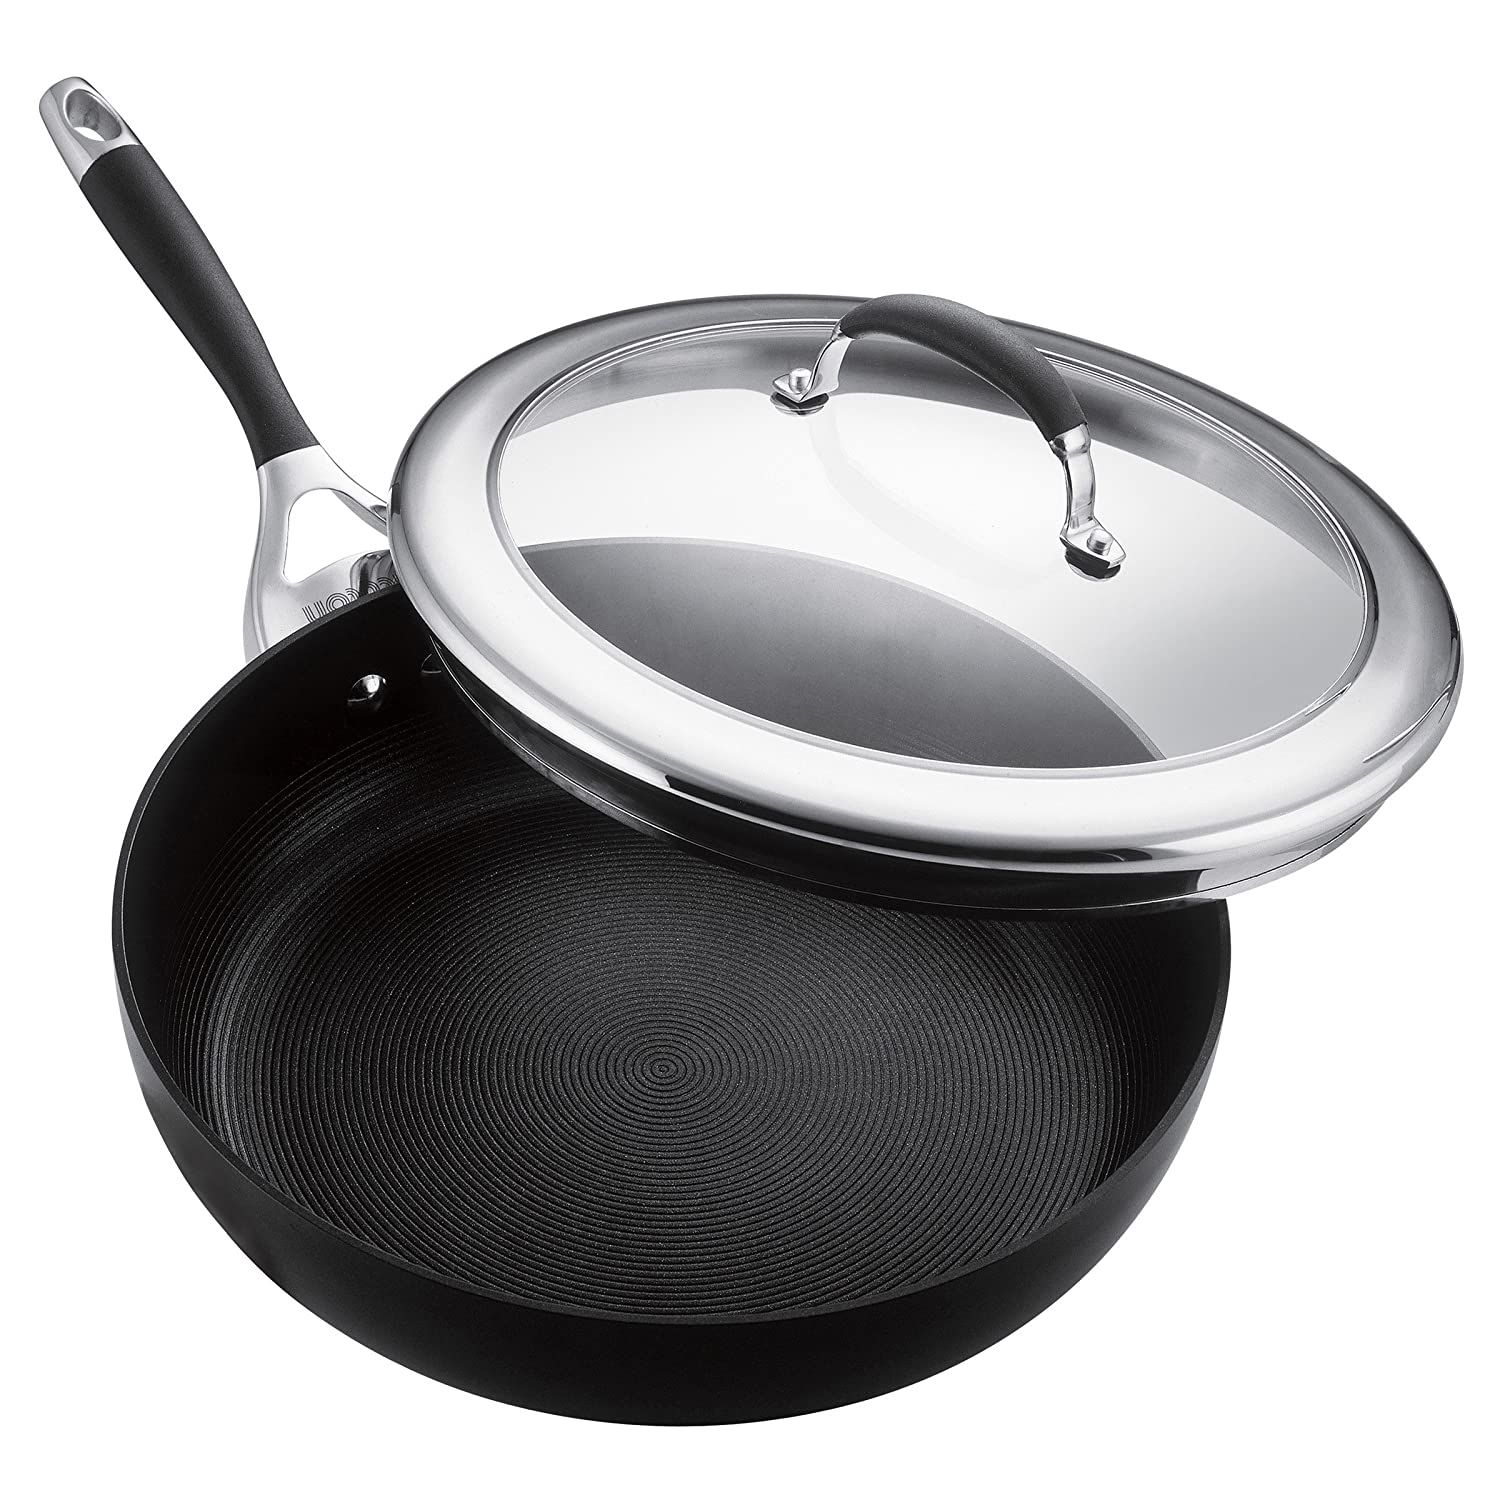 Circulon 80362 Elite Hard Anodized Nonstick Deep Frying Pan / Fry Pan /Deep Skillet with Lid - 12 Inch, Gray